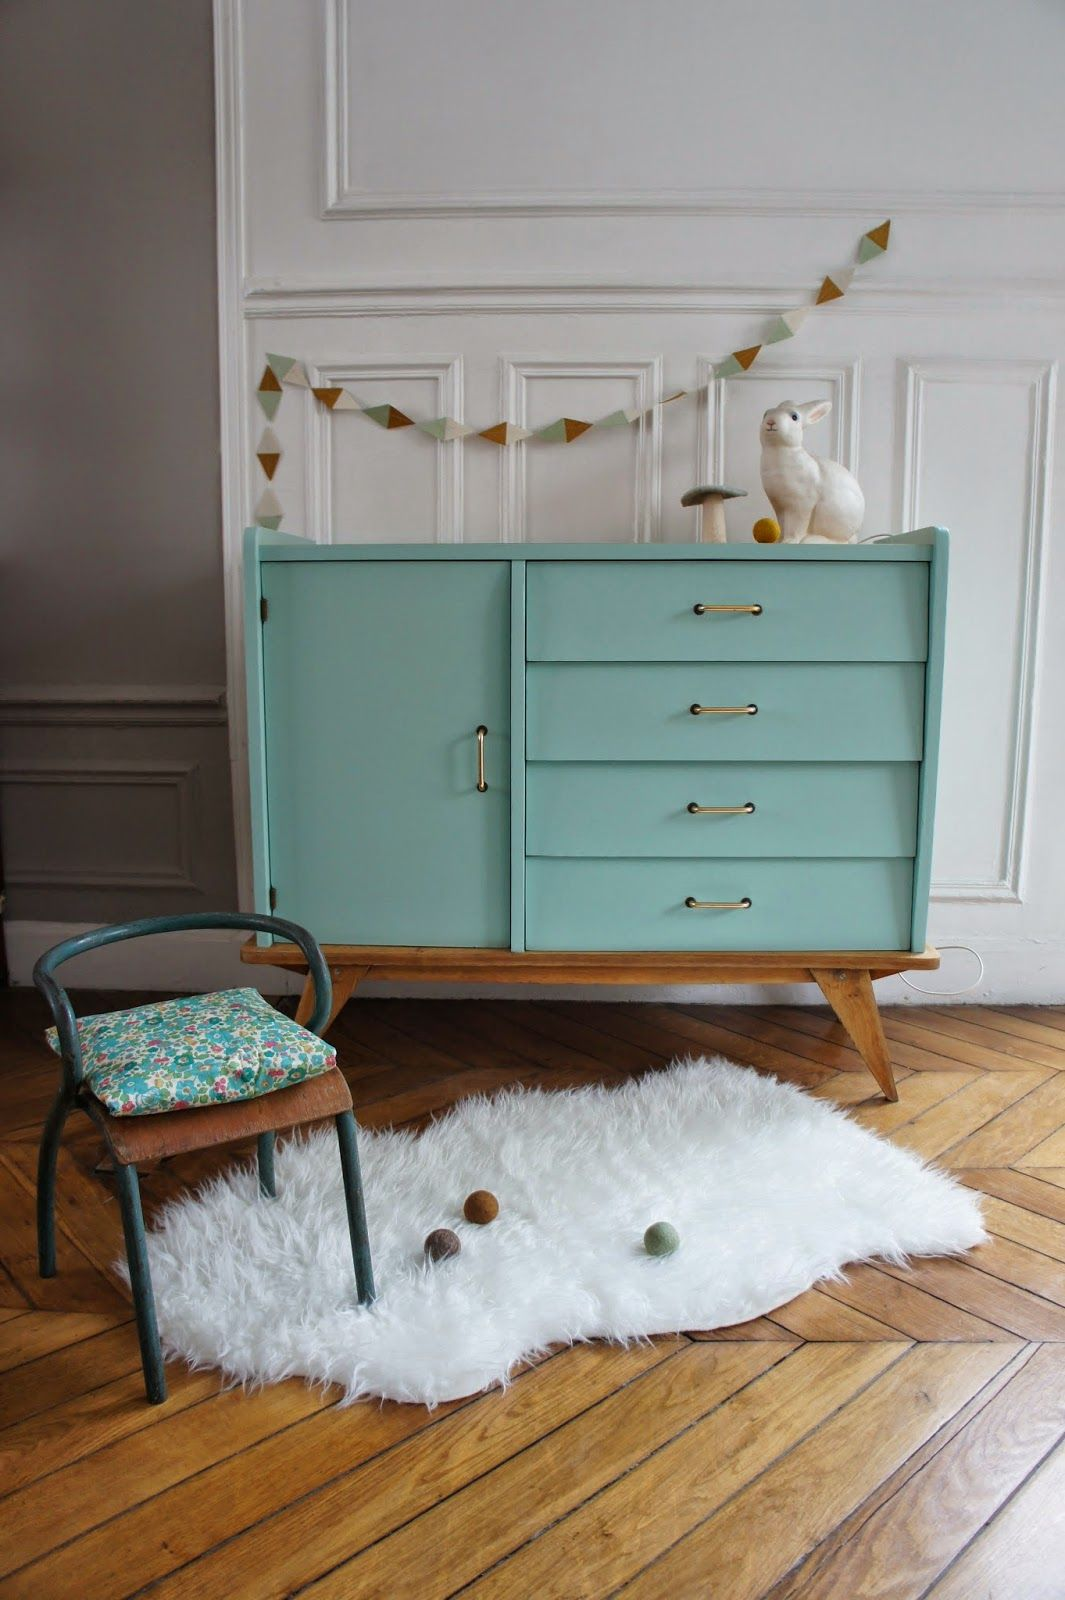 Pied Meuble Scandinave Commode Buffet Pieds Compas Vert Menthe For The Home In 2019